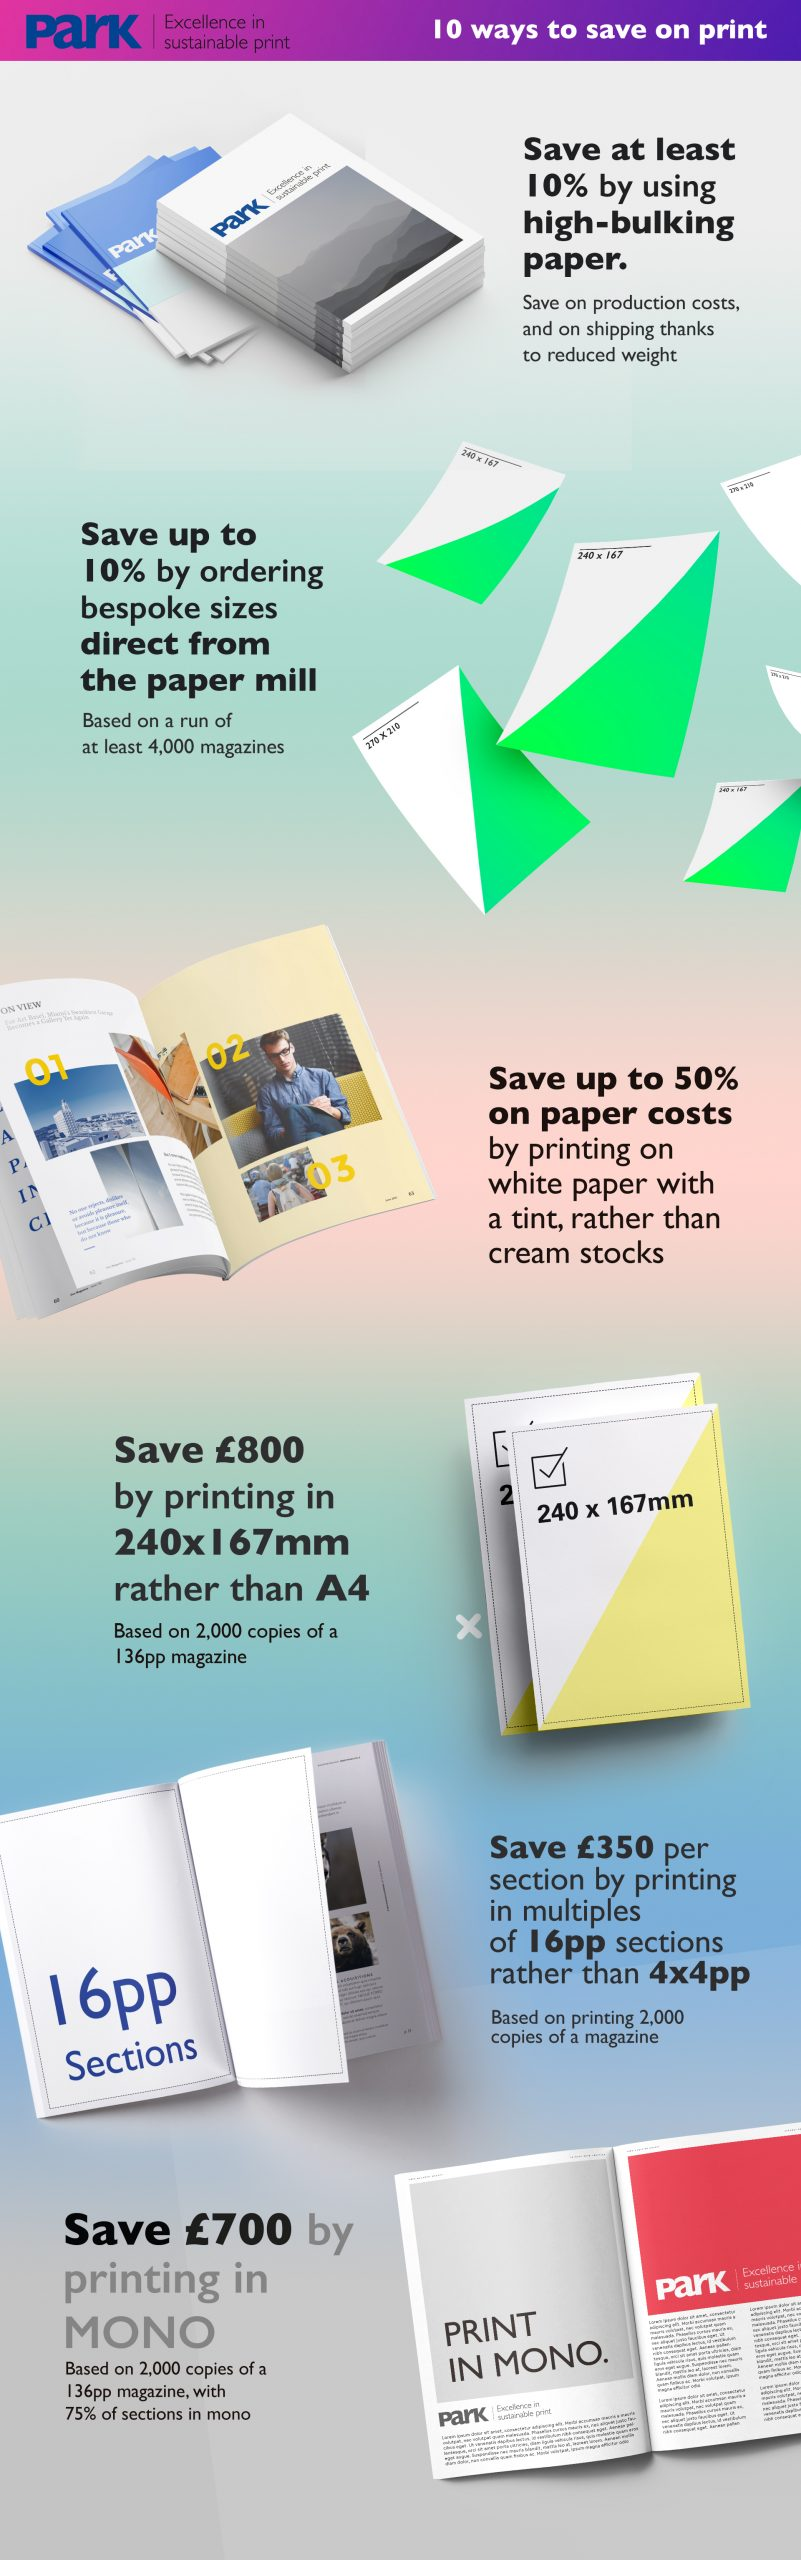 infographic showing ways to save on print